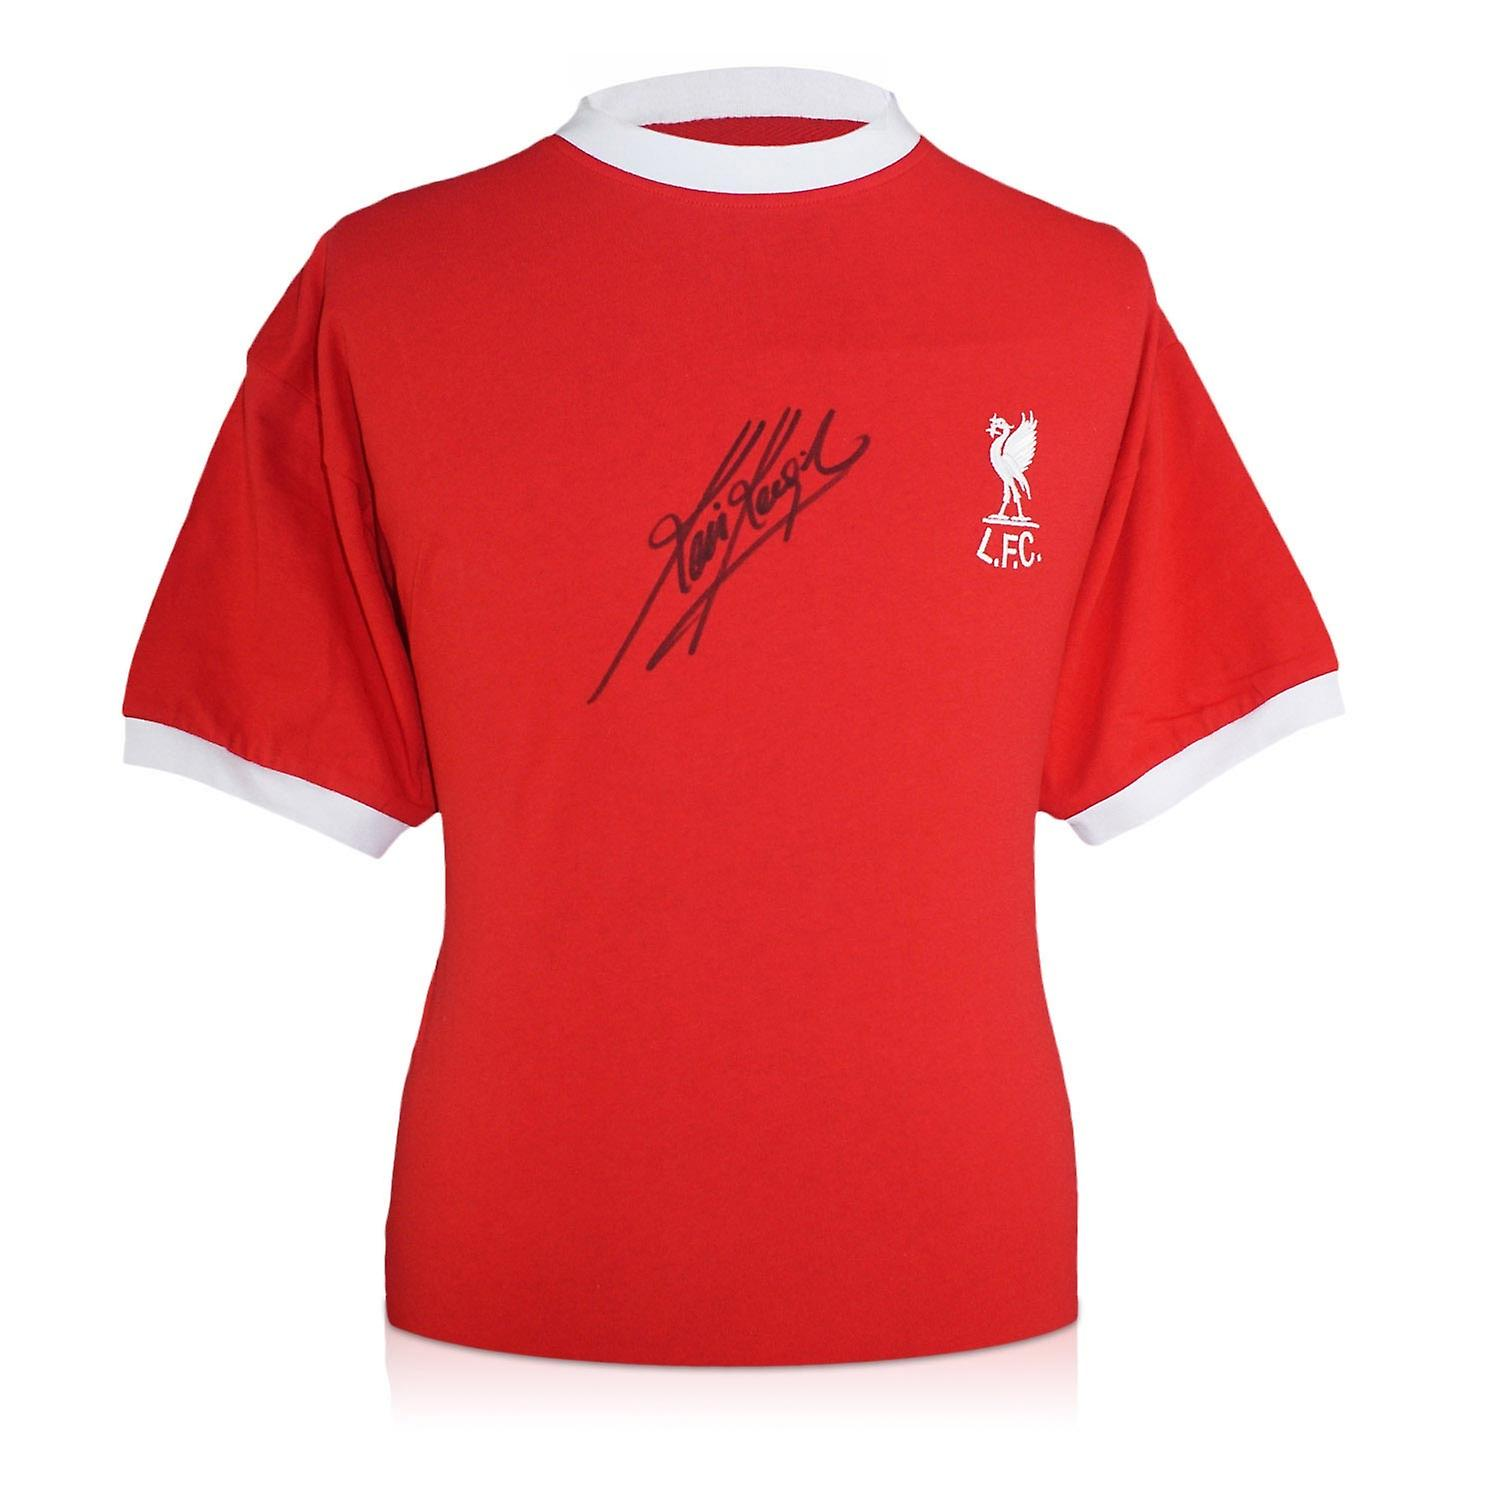 Kevin Keegan Signed Liverpool 1973 Shirt In Gift Box